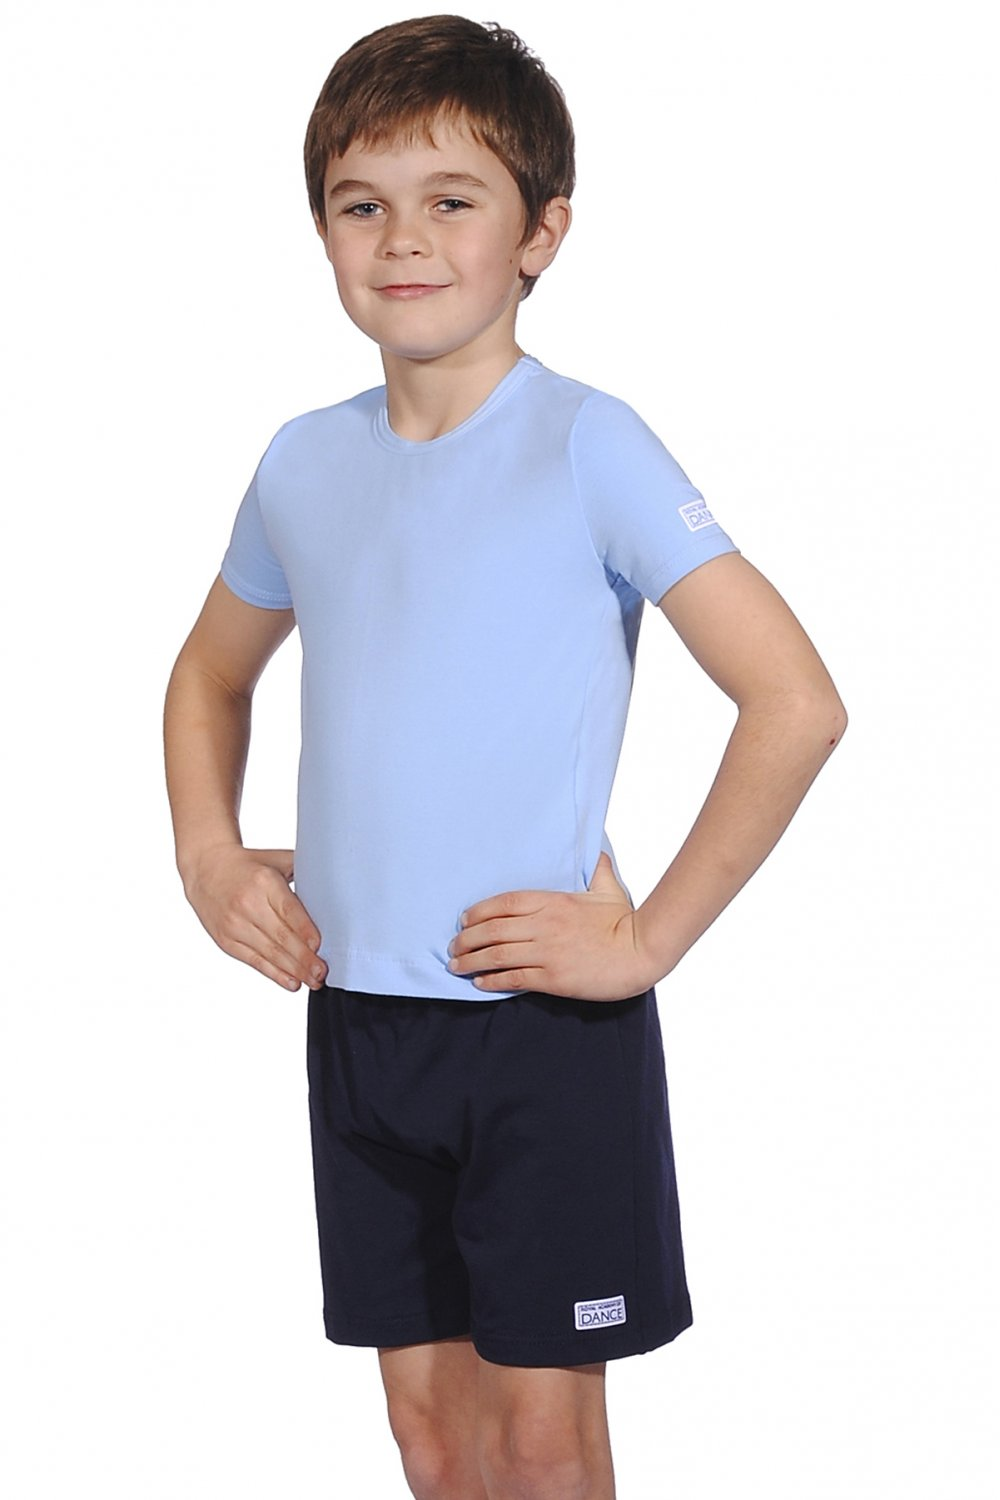 Freed of London Boys' Dance Shorts | Approved Uniform for the RAD